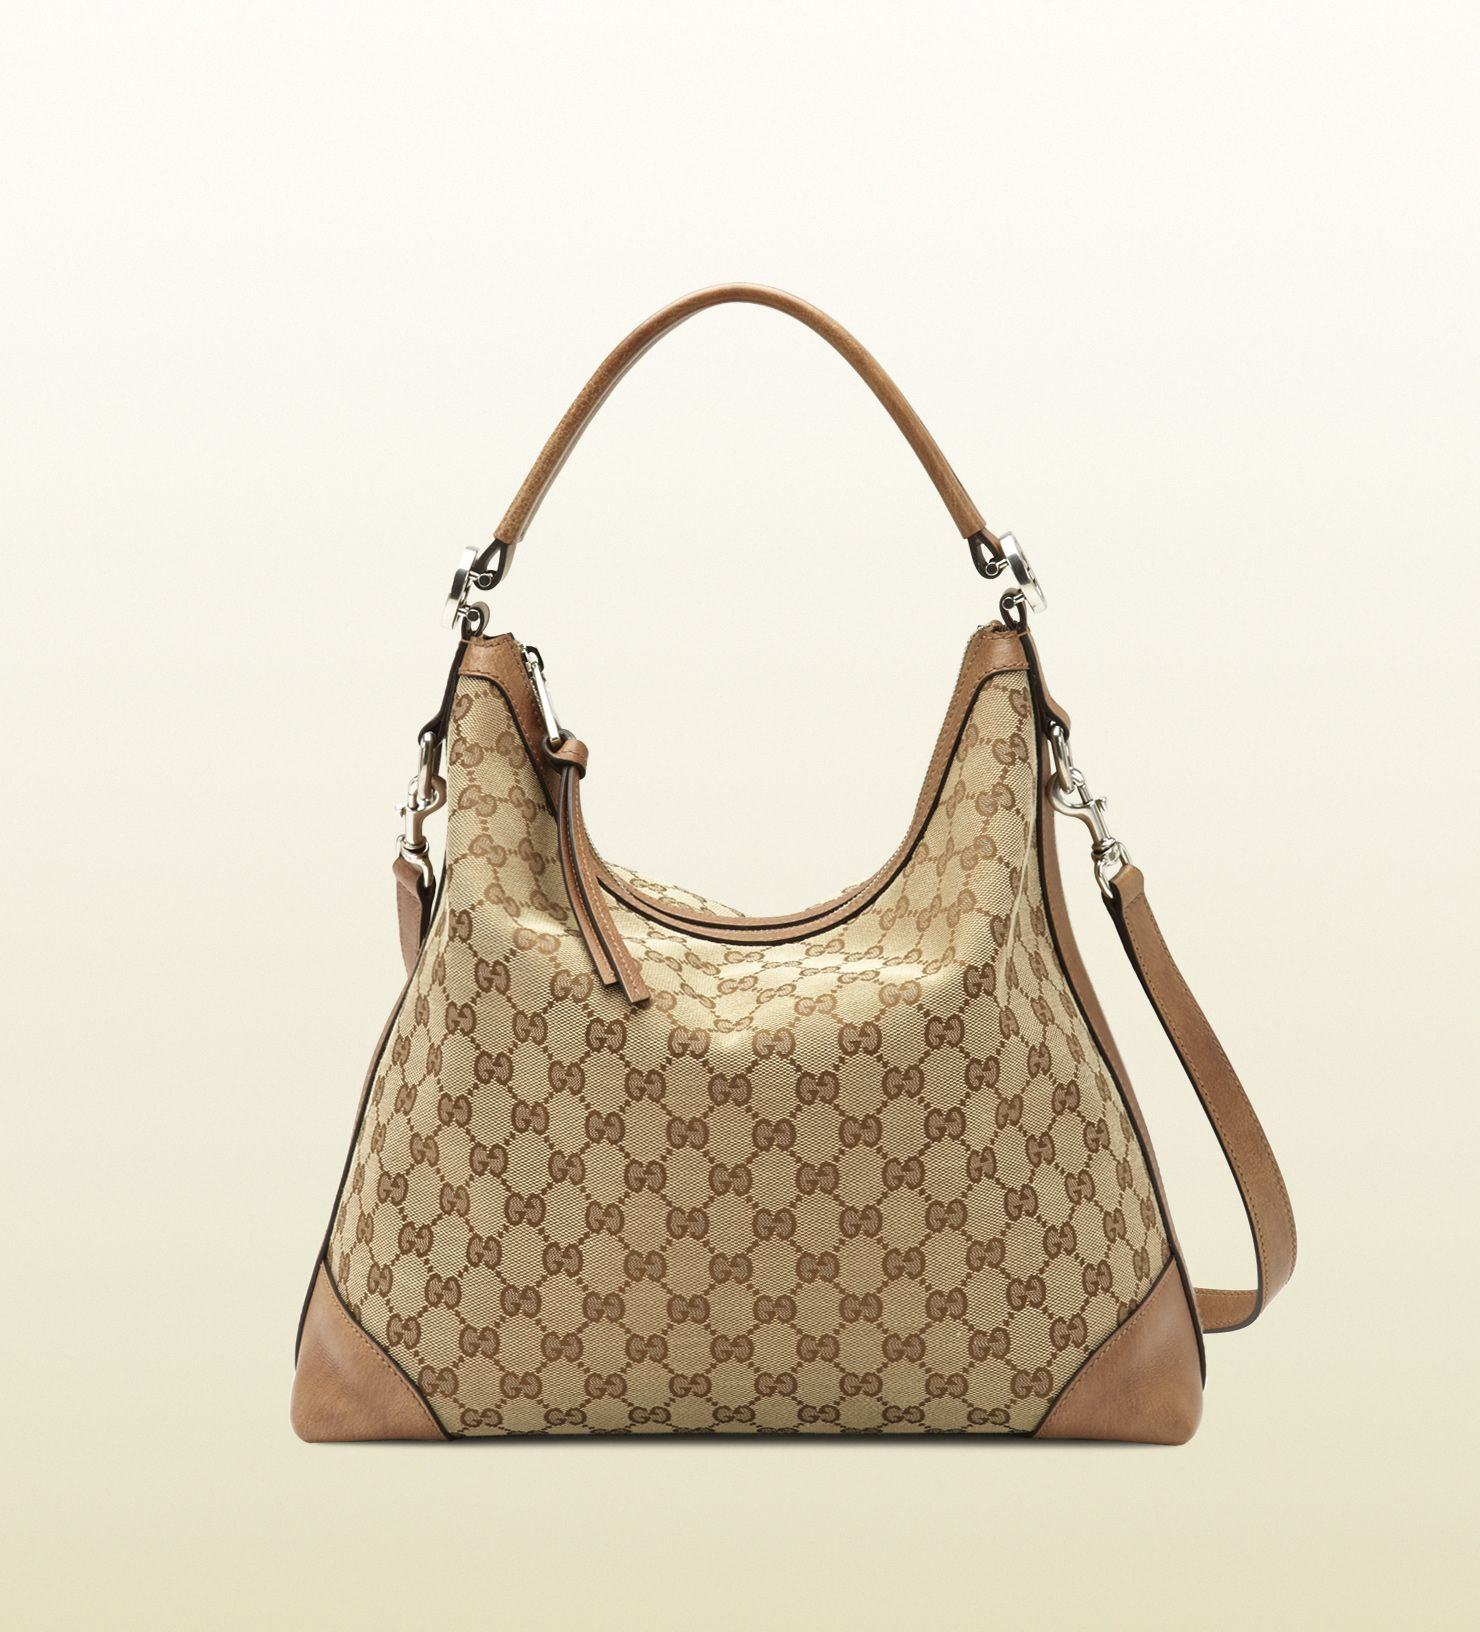 Gucci Bag Miss Gg Original Canvas Hobo The One That Will Be Mine